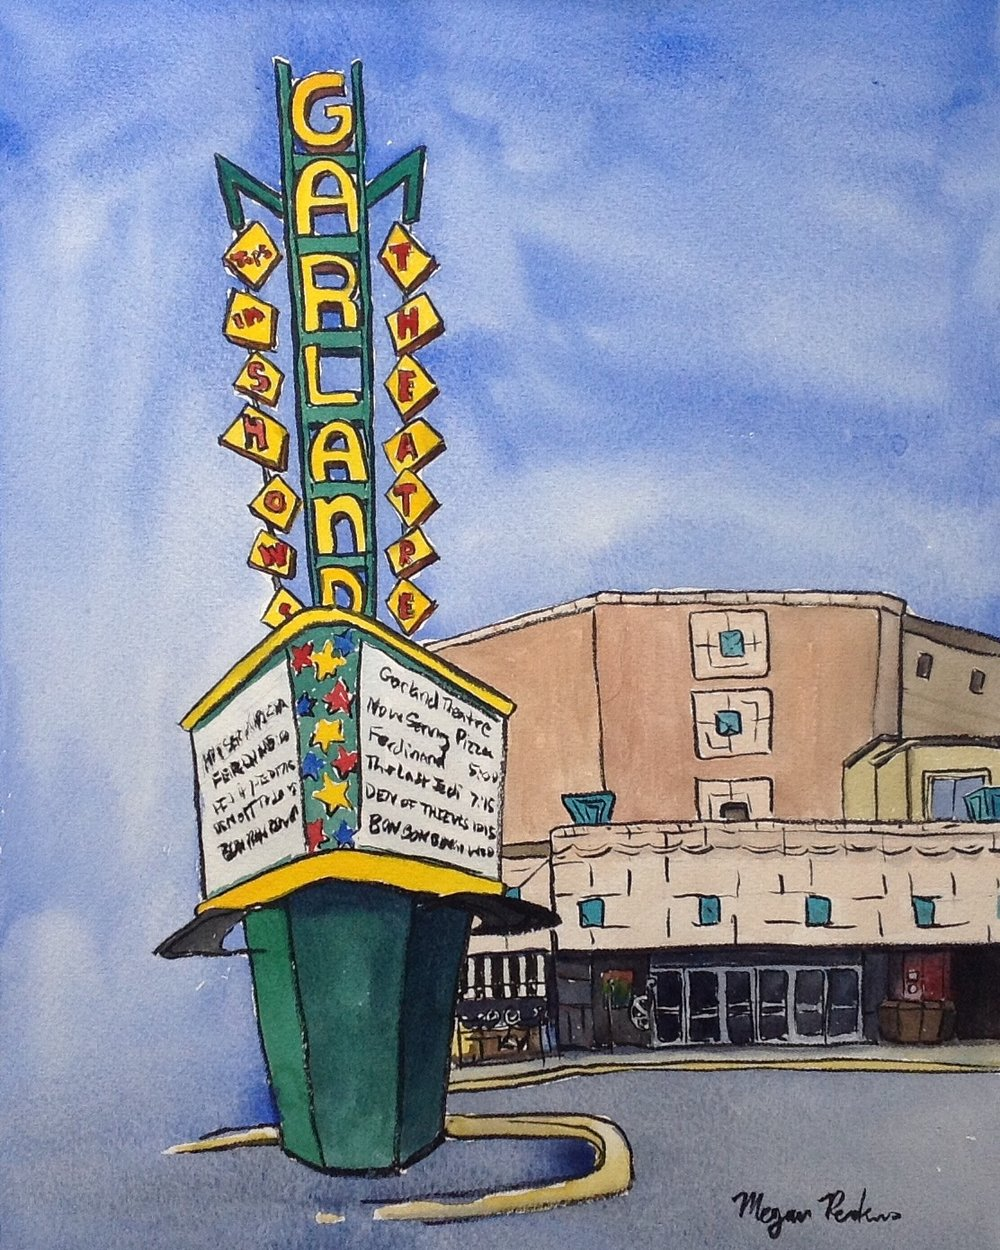 When I saw that the Garland Theater sign getting repainted this summer, I knew I needed to do another painting of it. Vibrant and still kicking after all these years! I've seen several delightful movies there in the past and for my brother-in-law's bachelor party, his best man rented out the theater so that all the family could come and watch movies for a night. It was a lot of fun!